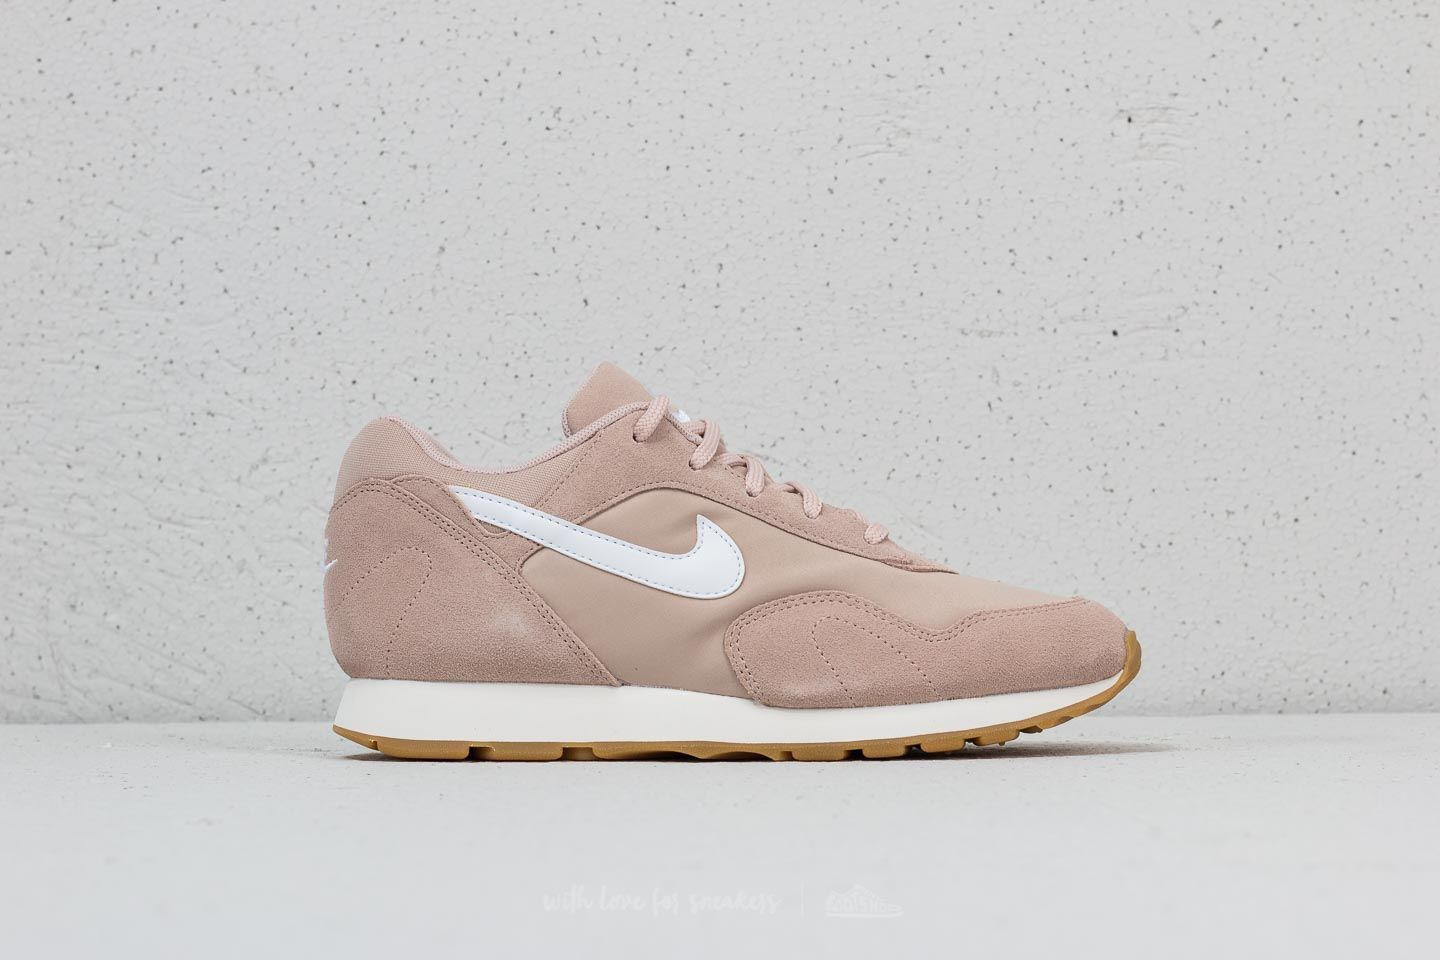 new style 06abc 65a95 Nike W Outburst Particle Beige  White-Sand-Sail at a great price £